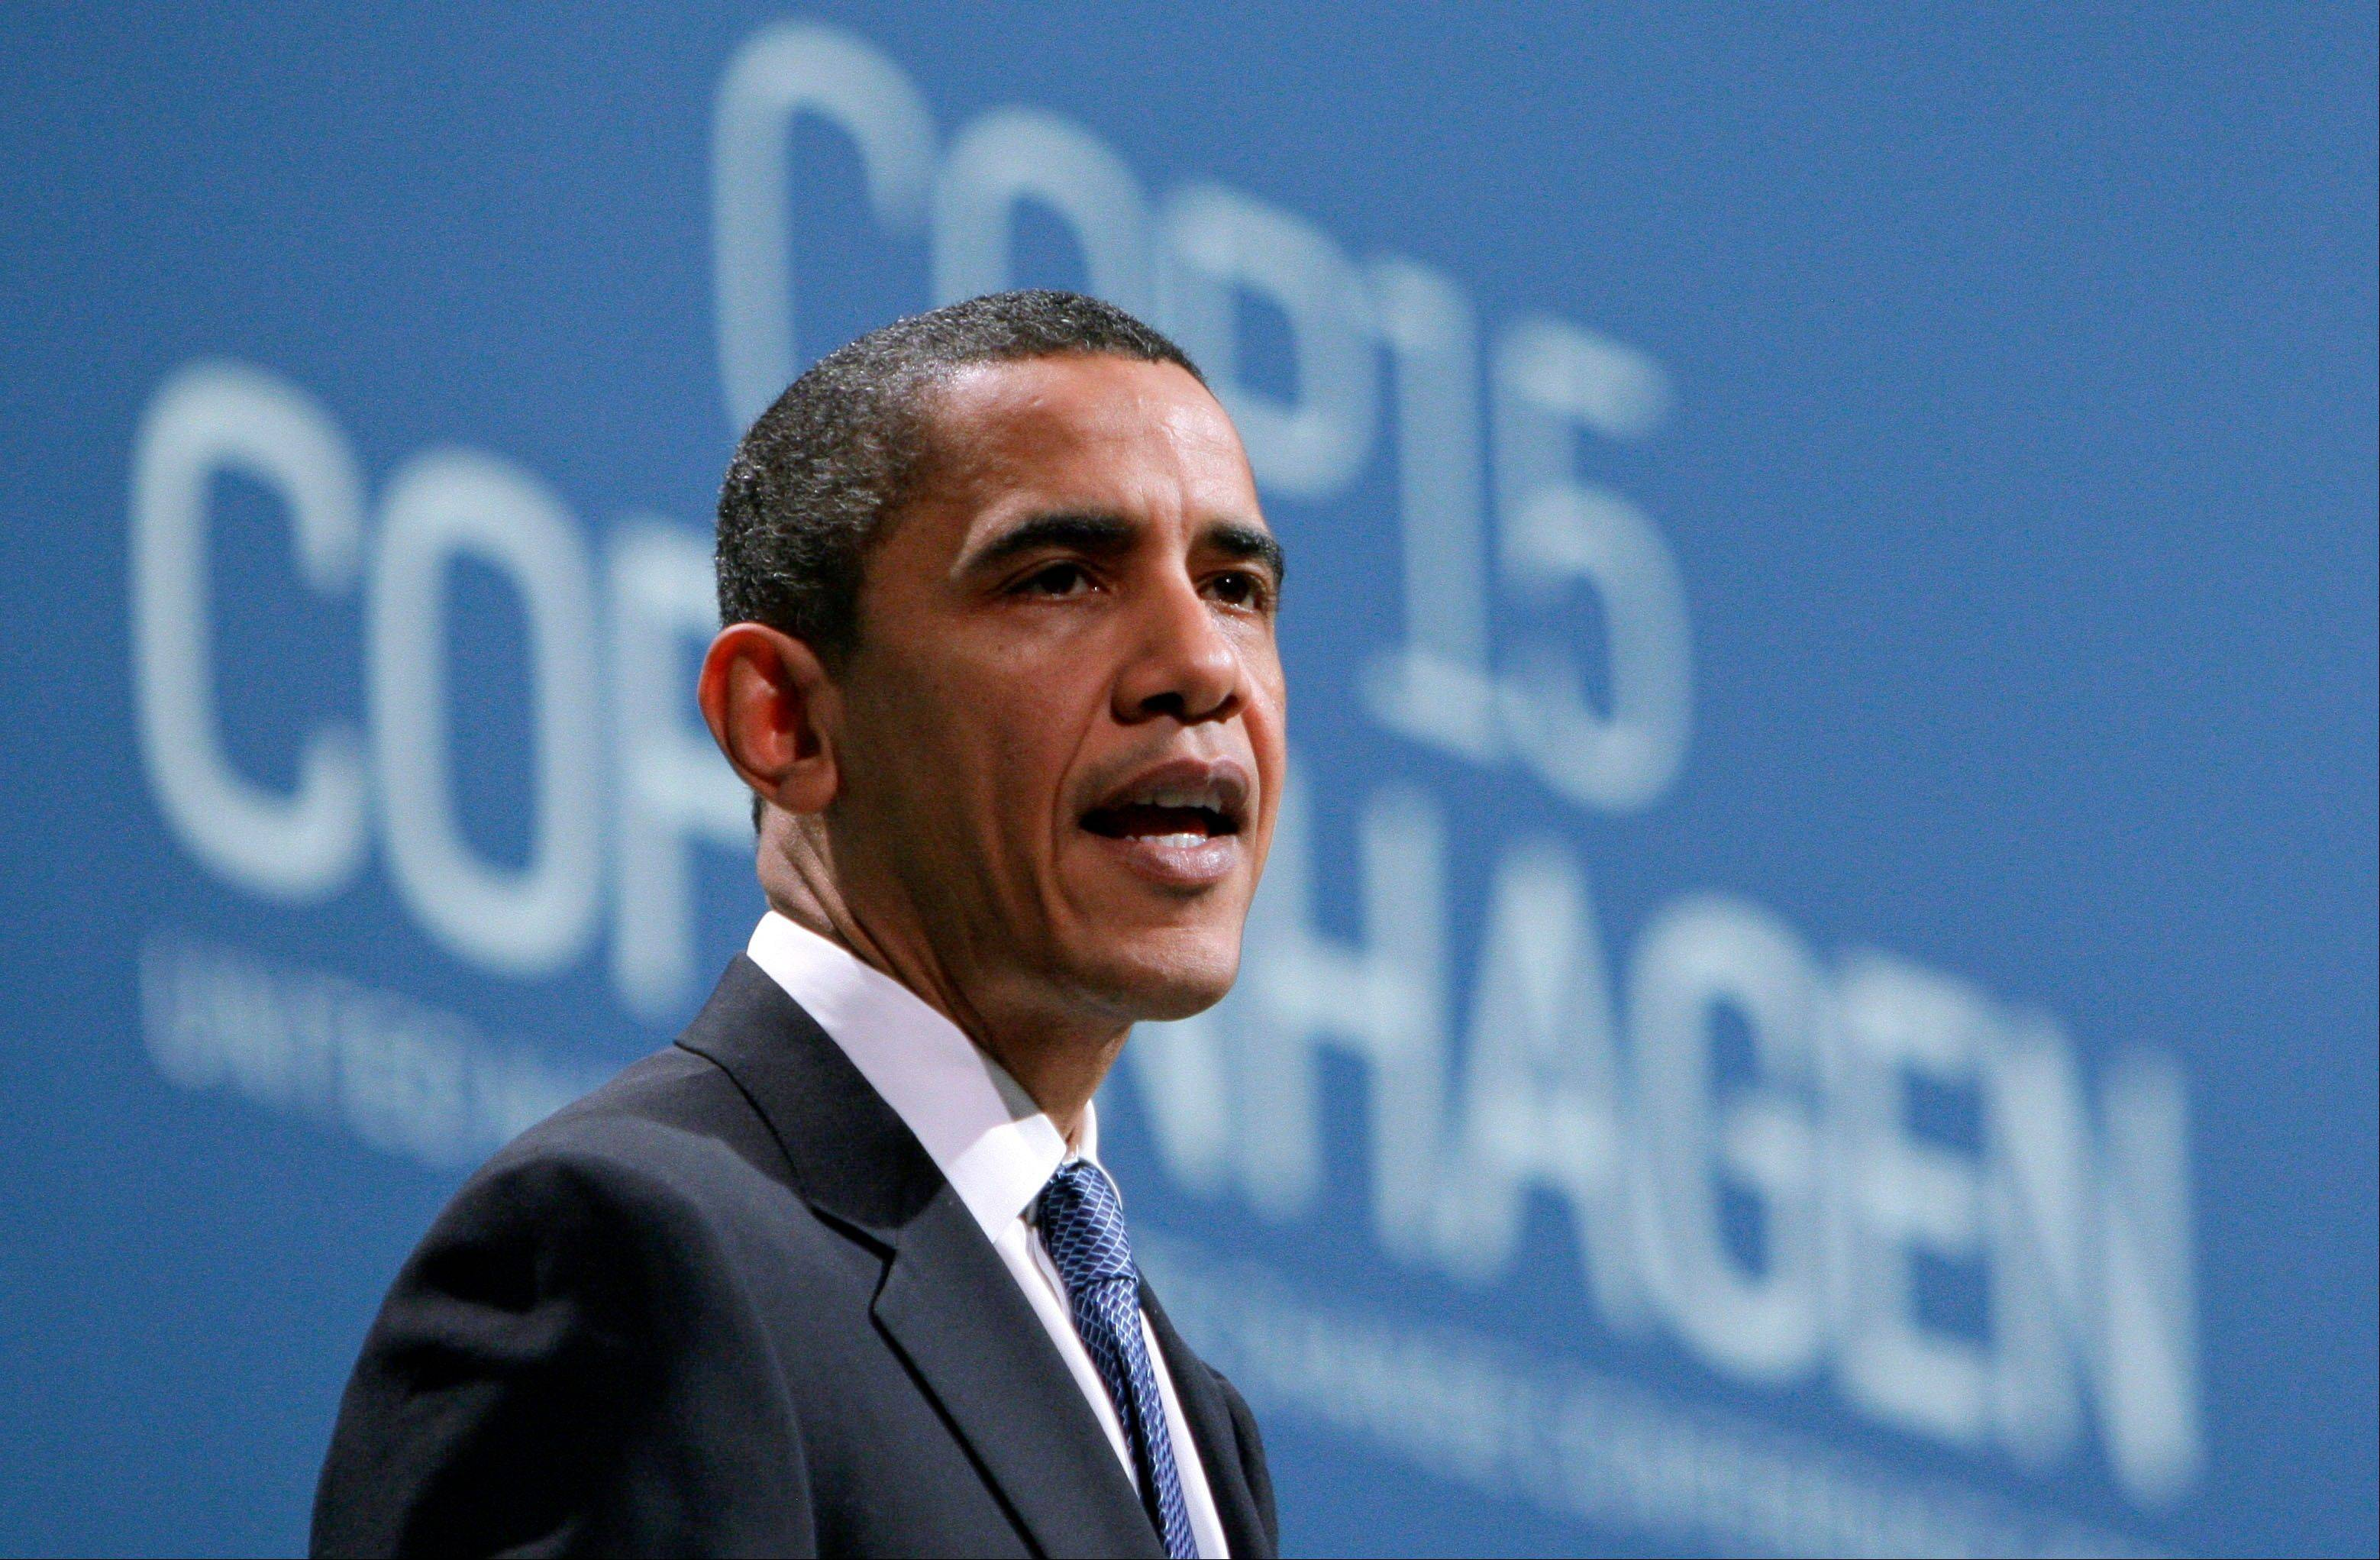 In this Dec. 18, 2009, file photo, President Barack Obama speaks at the climate summit in Copenhagen, Denmark. Three topics are noticeably missing from the Democrats' meeting: Climate change, economic stimulus and the massive bank bailout.